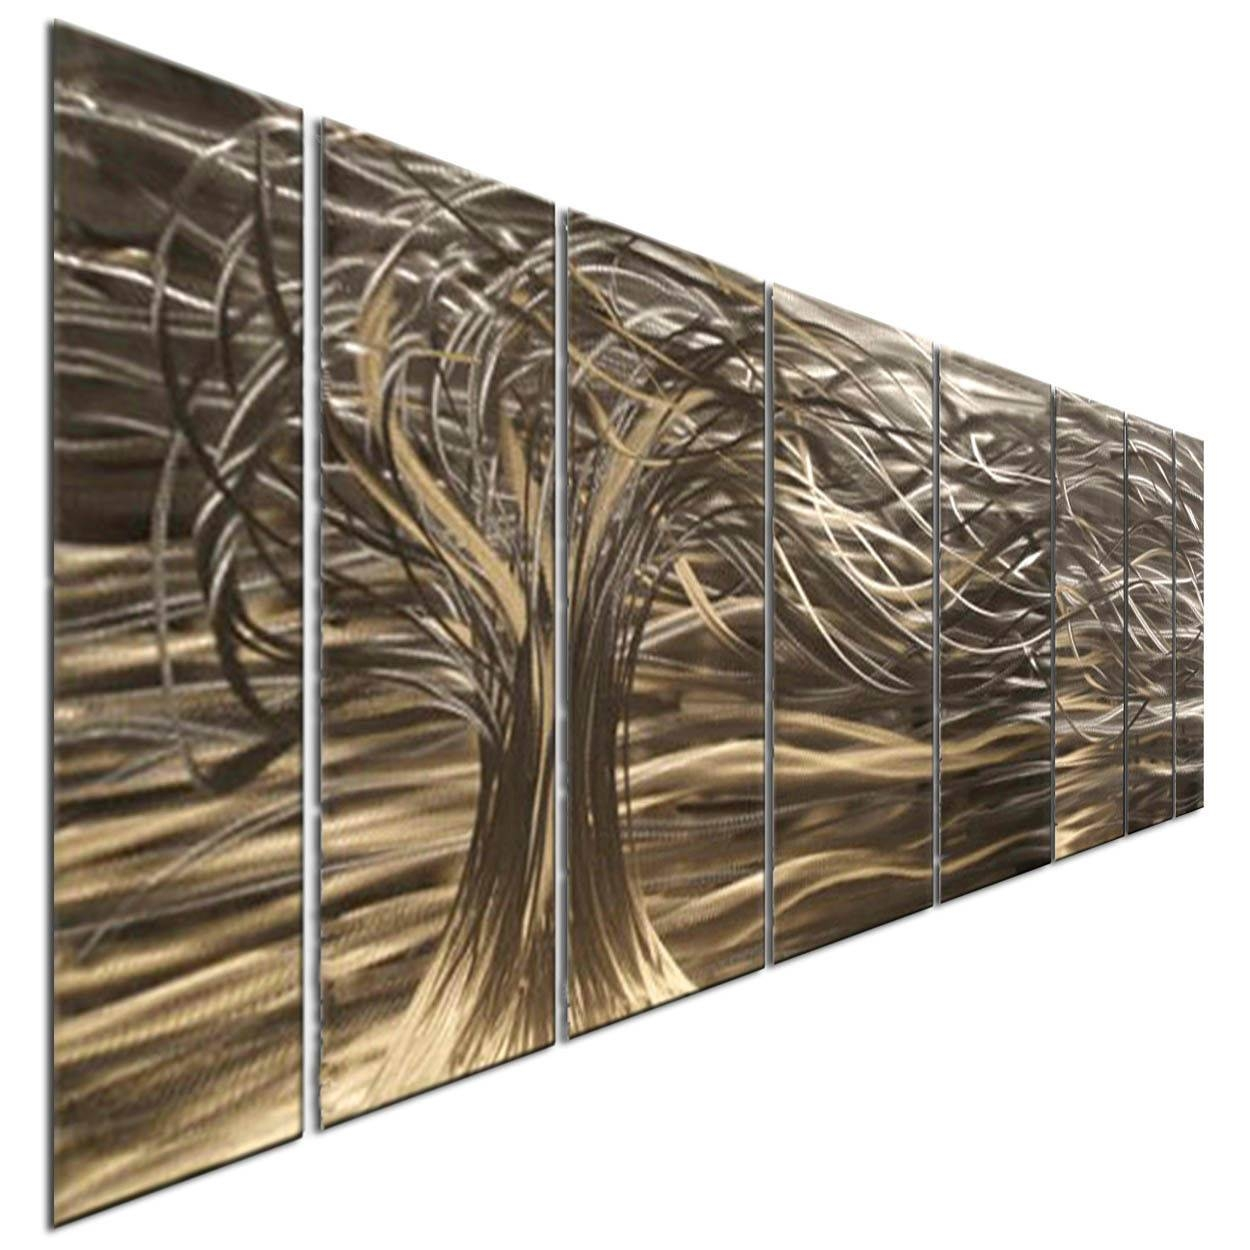 Contemporary 7 Panel Metal Wall Art Sculpturesash Carl Home Throughout Latest Ash Carl Metal Wall Art (View 13 of 30)